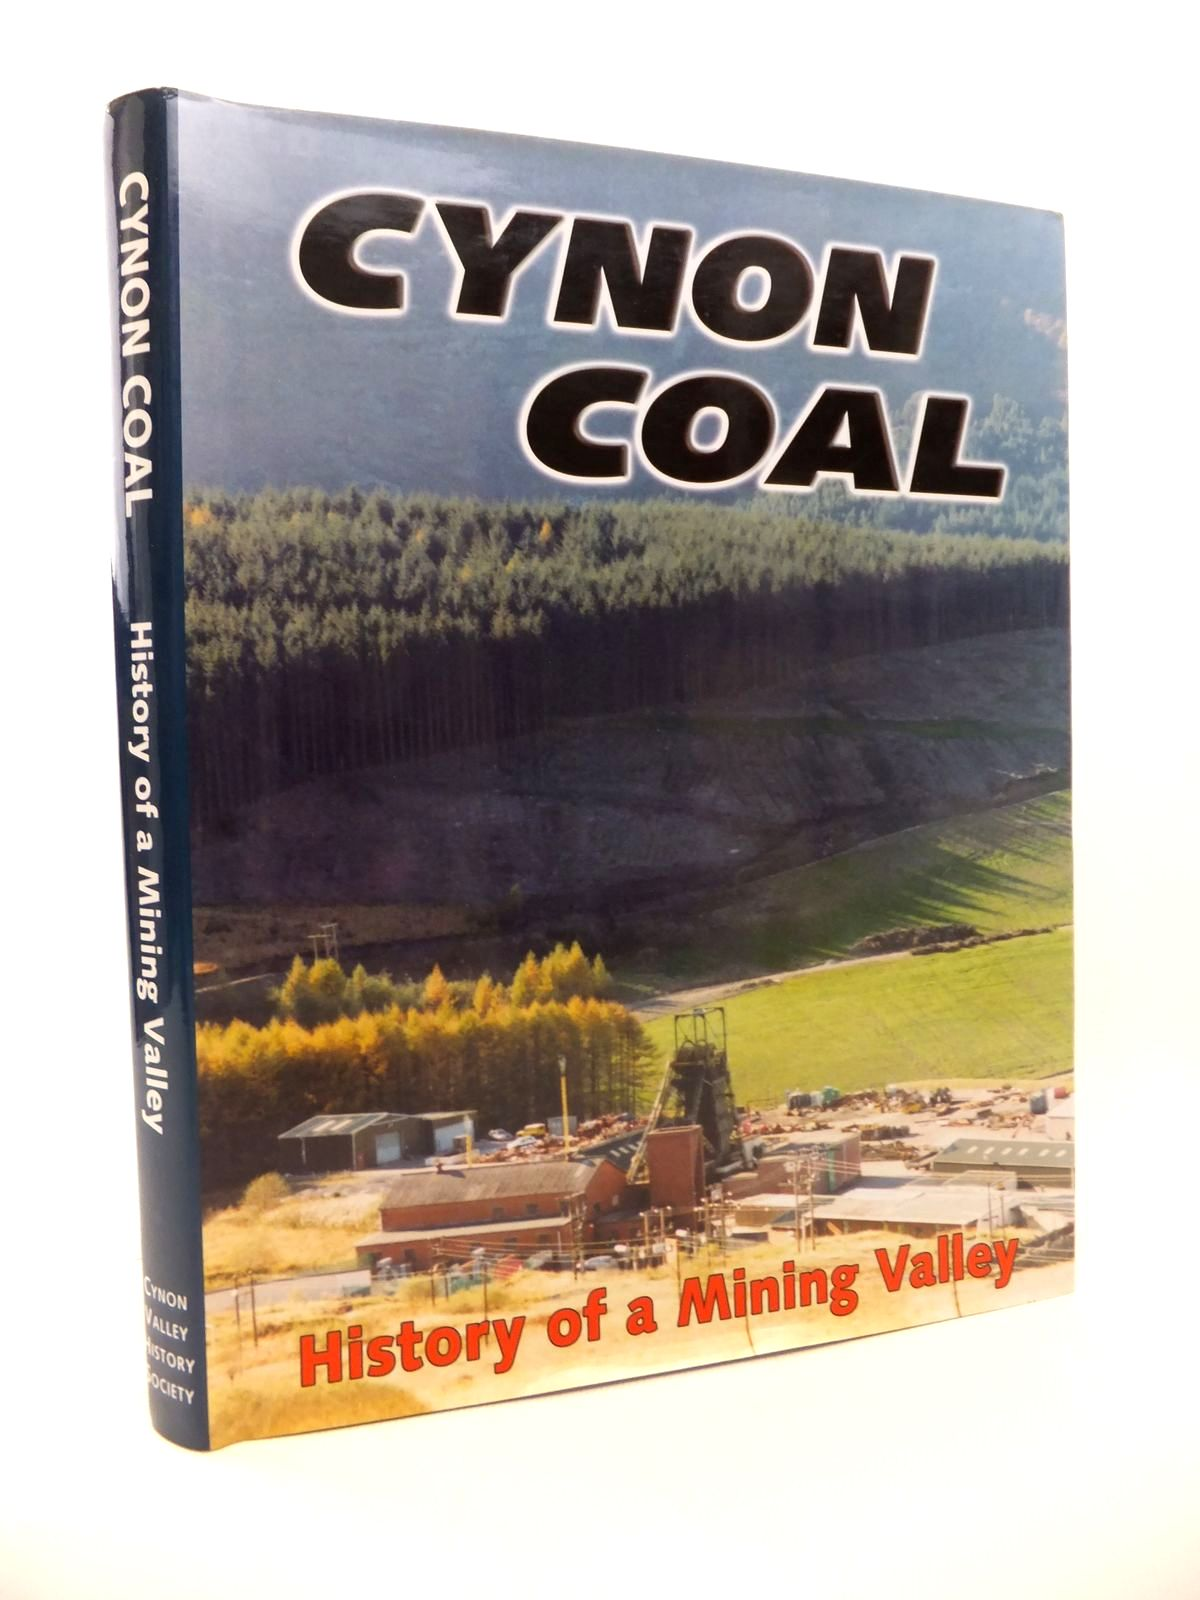 Photo of CYNON COAL HISTORY OF A MINING VALLEY published by Cynon Valley History Society (STOCK CODE: 1813525)  for sale by Stella & Rose's Books